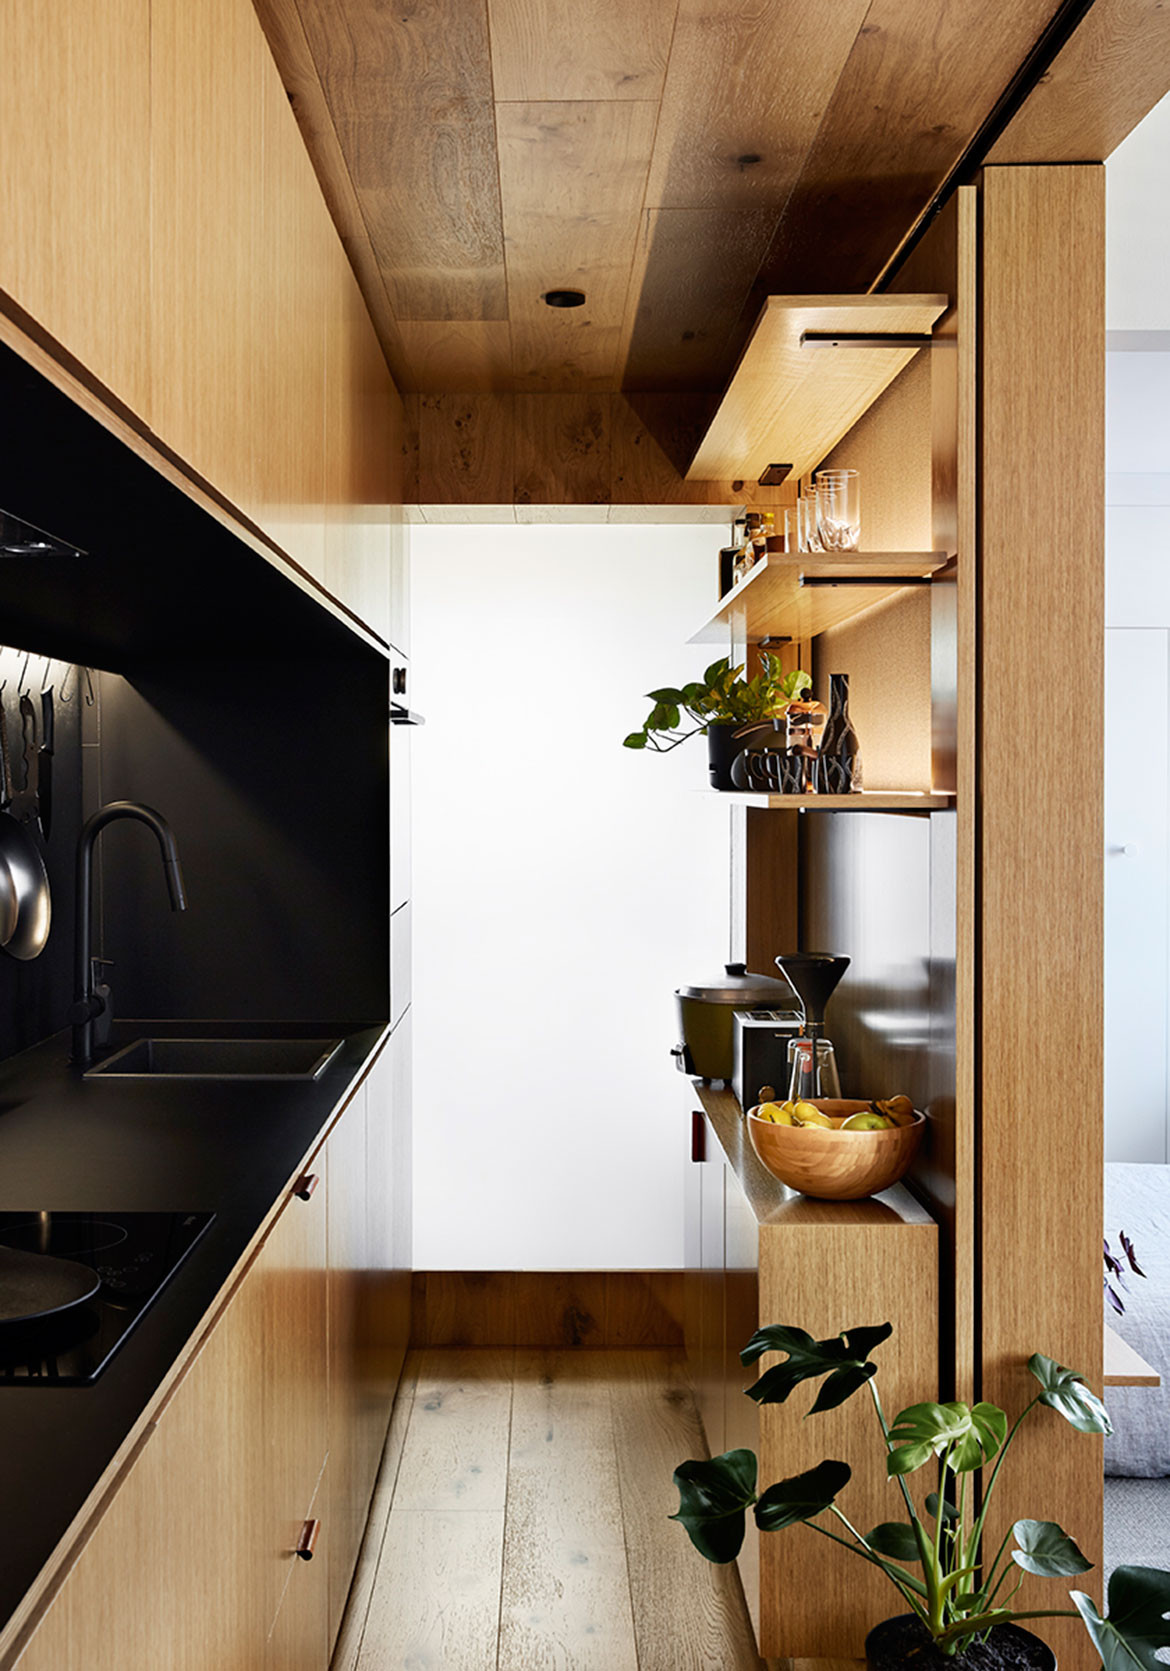 Type Street Apartment Tsai Design cc Tess Kelly kitchen